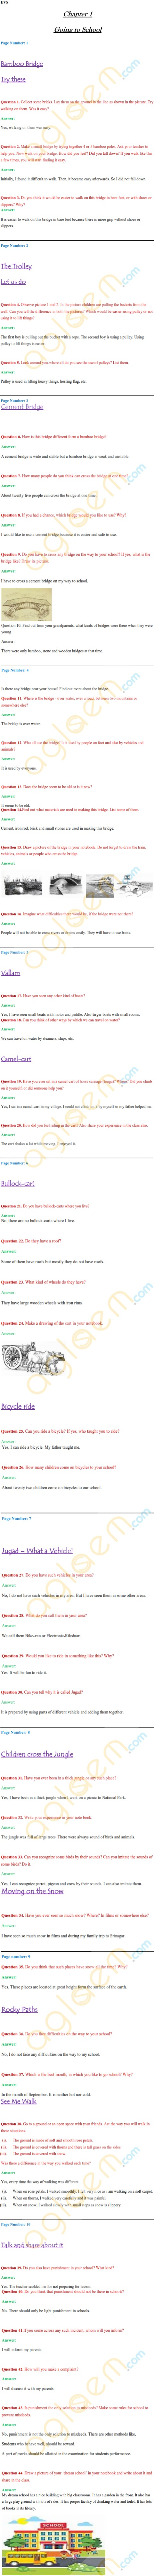 NCERT Solutions Class 4 EVS Chapter 1 Going to School